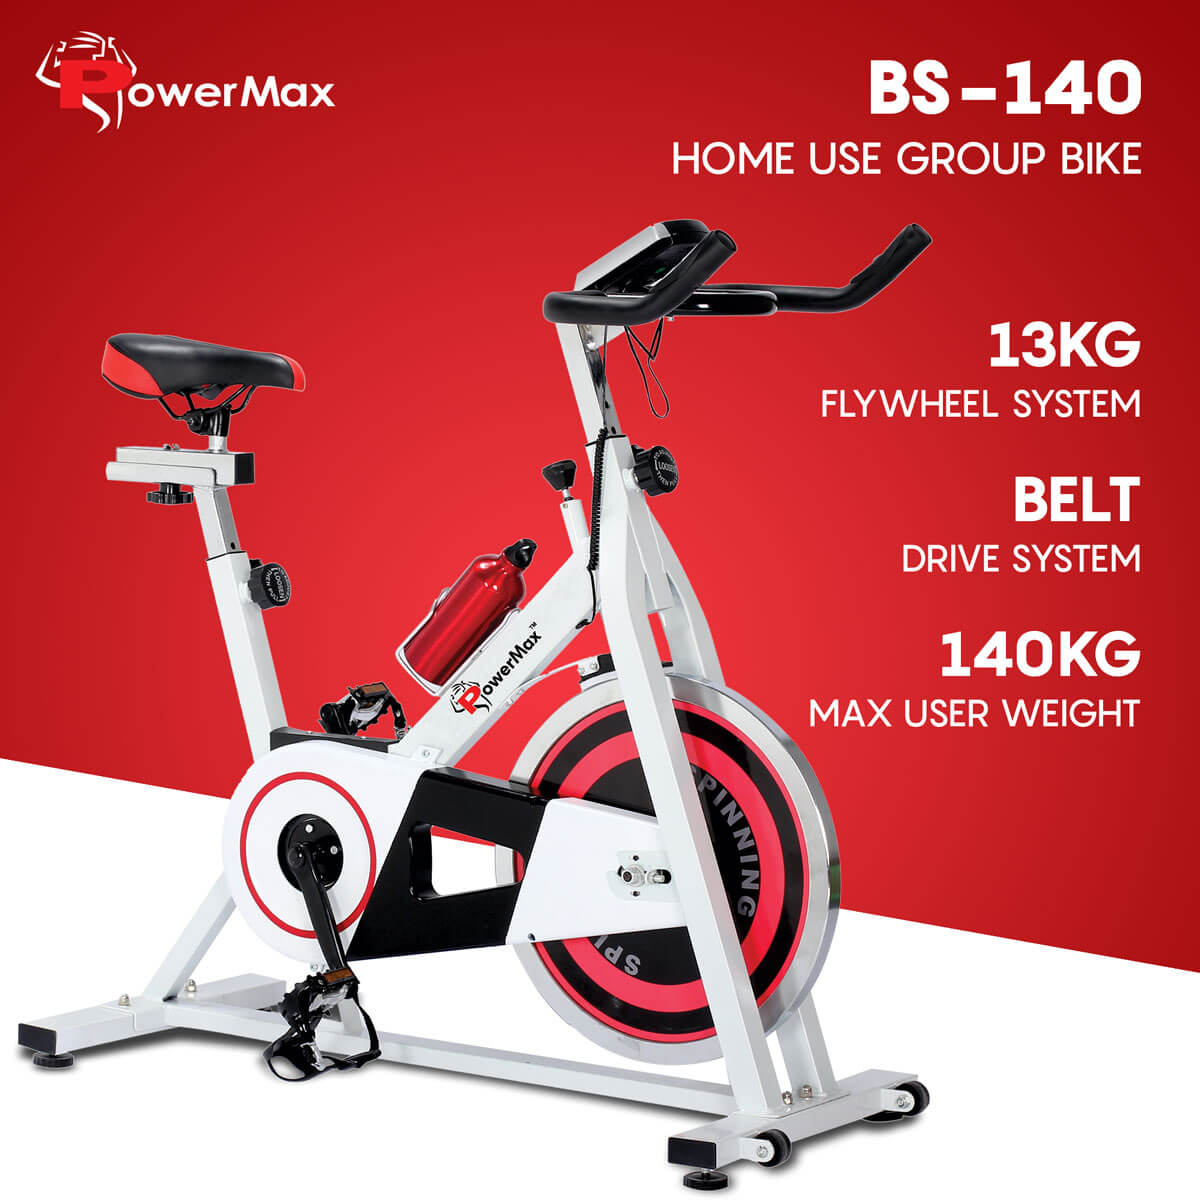 Home Use Group Bike at Low Price